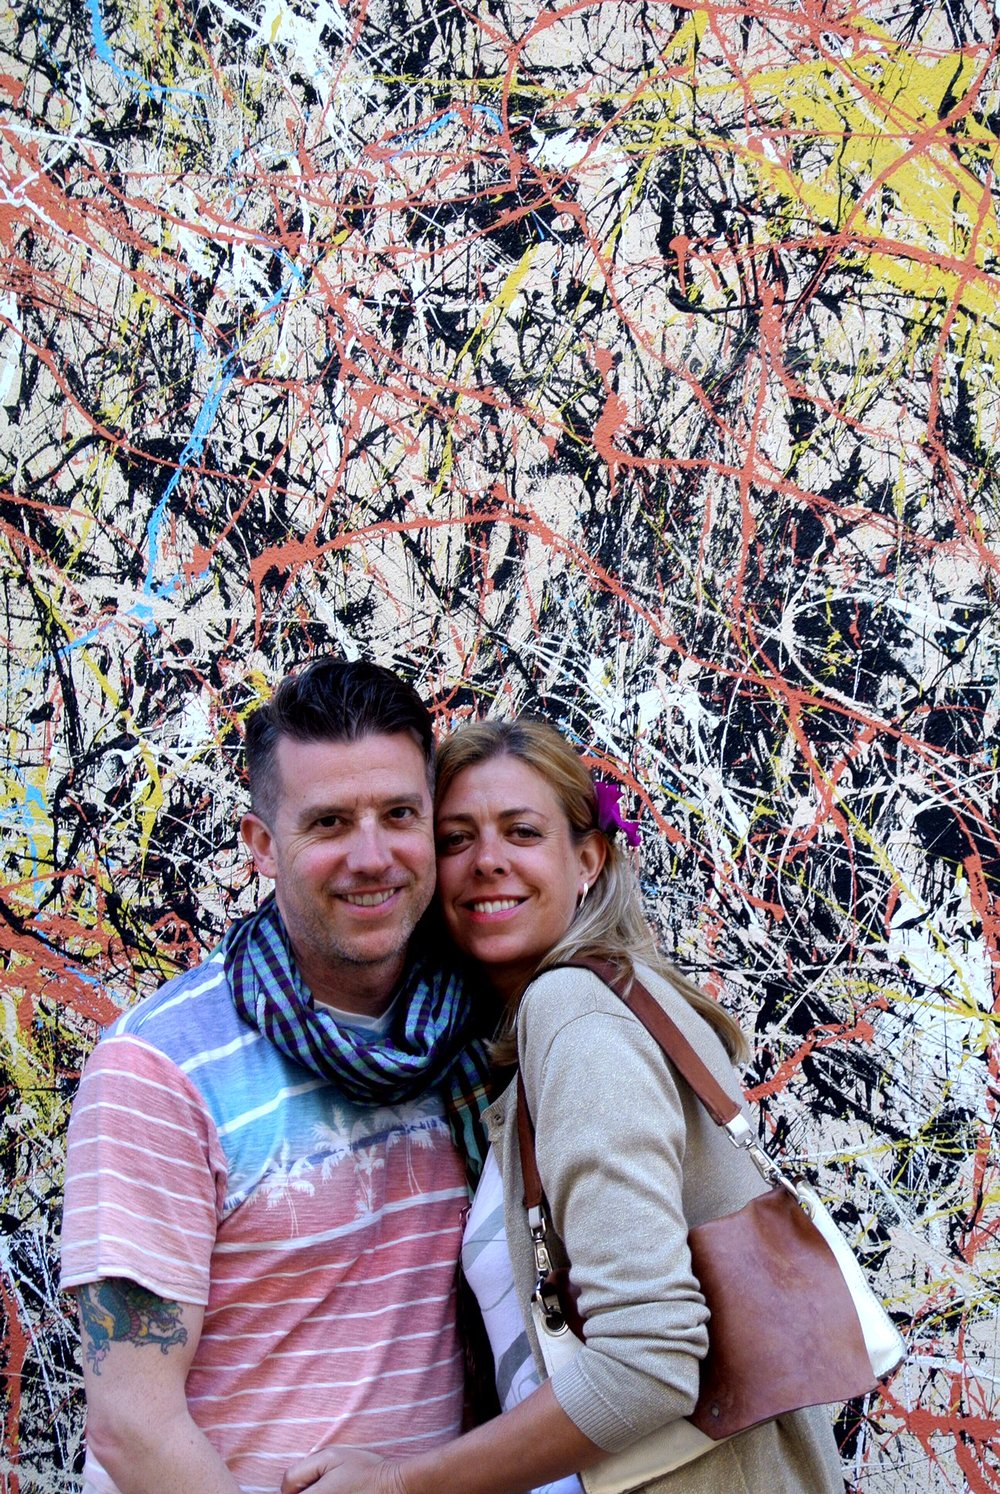 Wally and Jo pose in front of street art